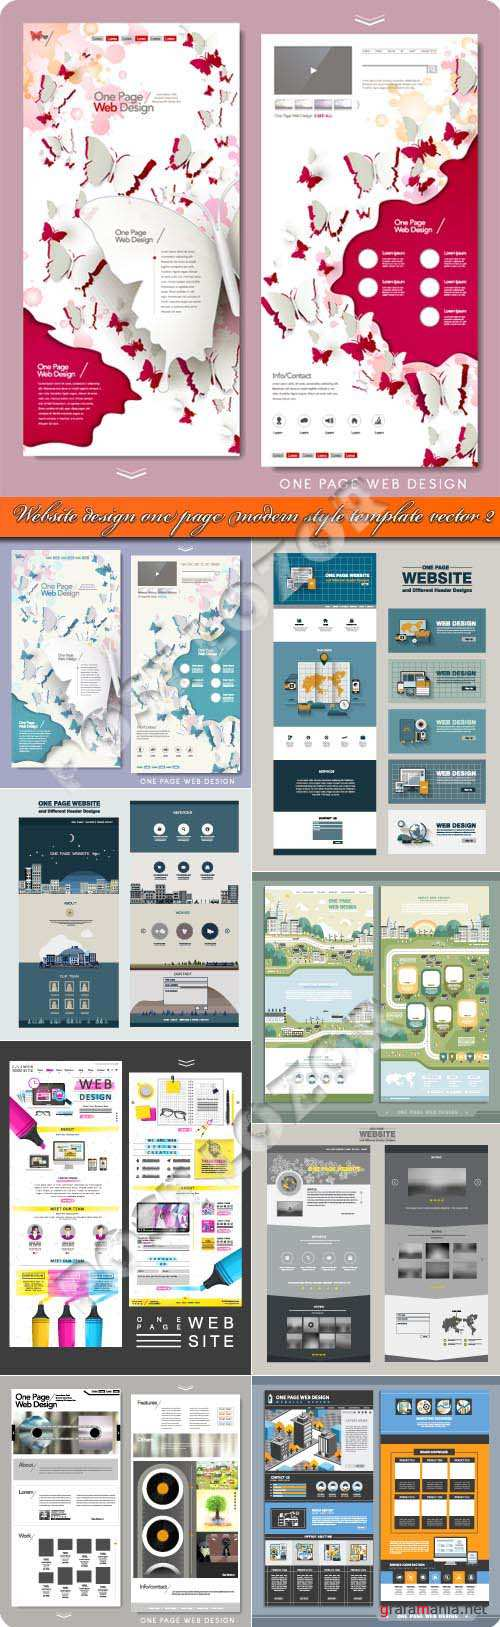 Website design one page modern style template vector 2